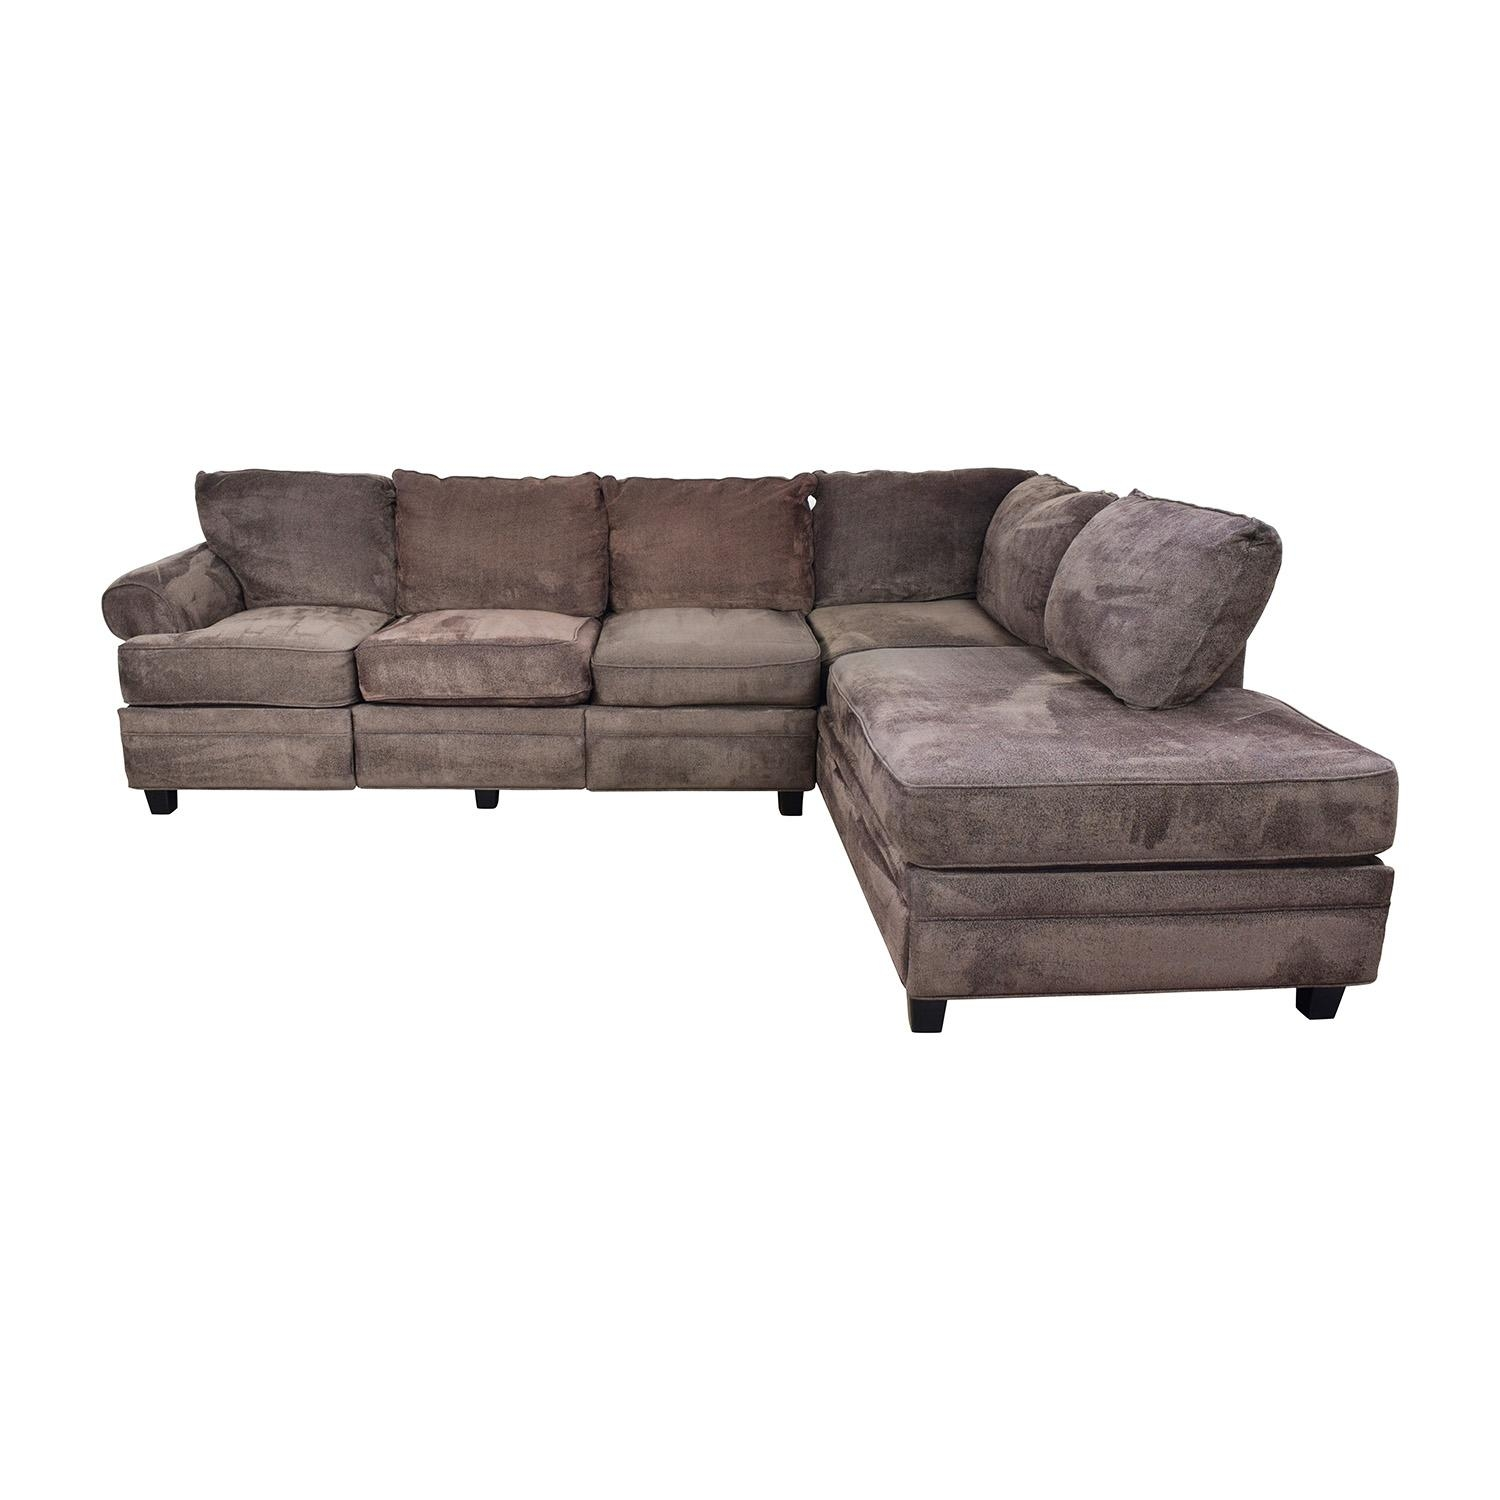 55% Off - Bob's Furniture Bob's Furniture Brown Sectional With pertaining to Used Sectionals